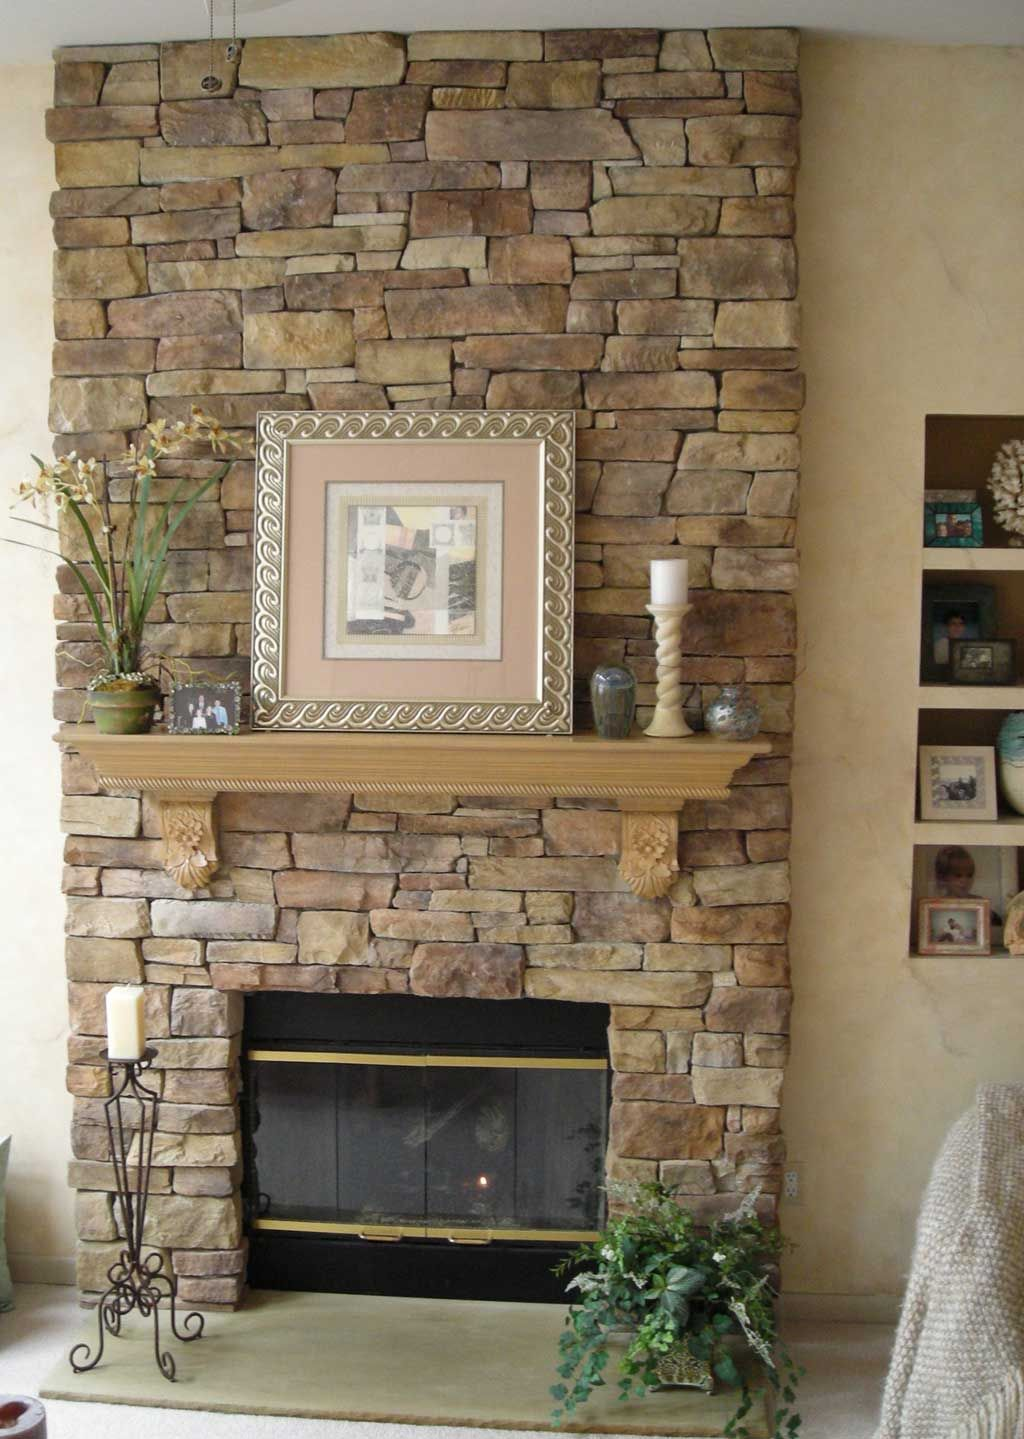 Stone Facade for Fireplace Awesome Stone Veneer Fireplace Design Fireplace In 2019